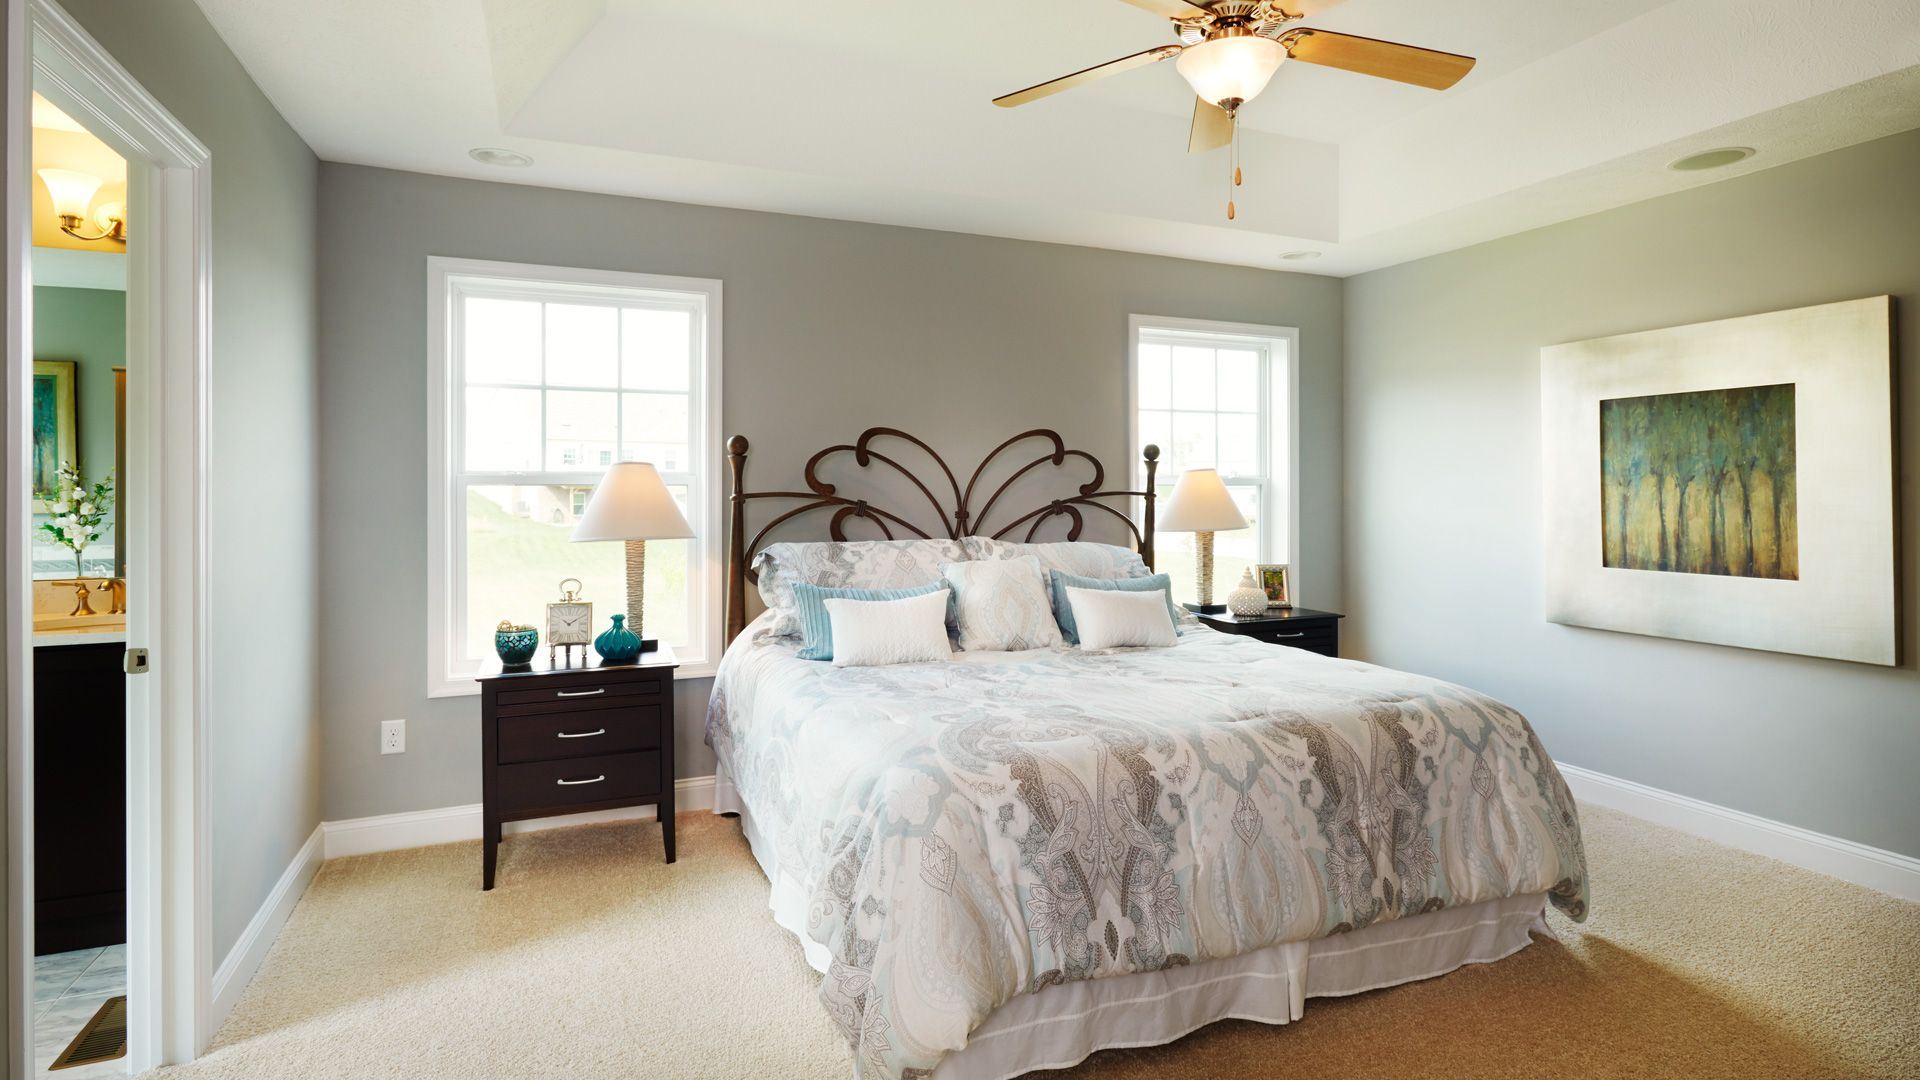 Bedroom featured in the Newport By S & A Homes in State College, PA